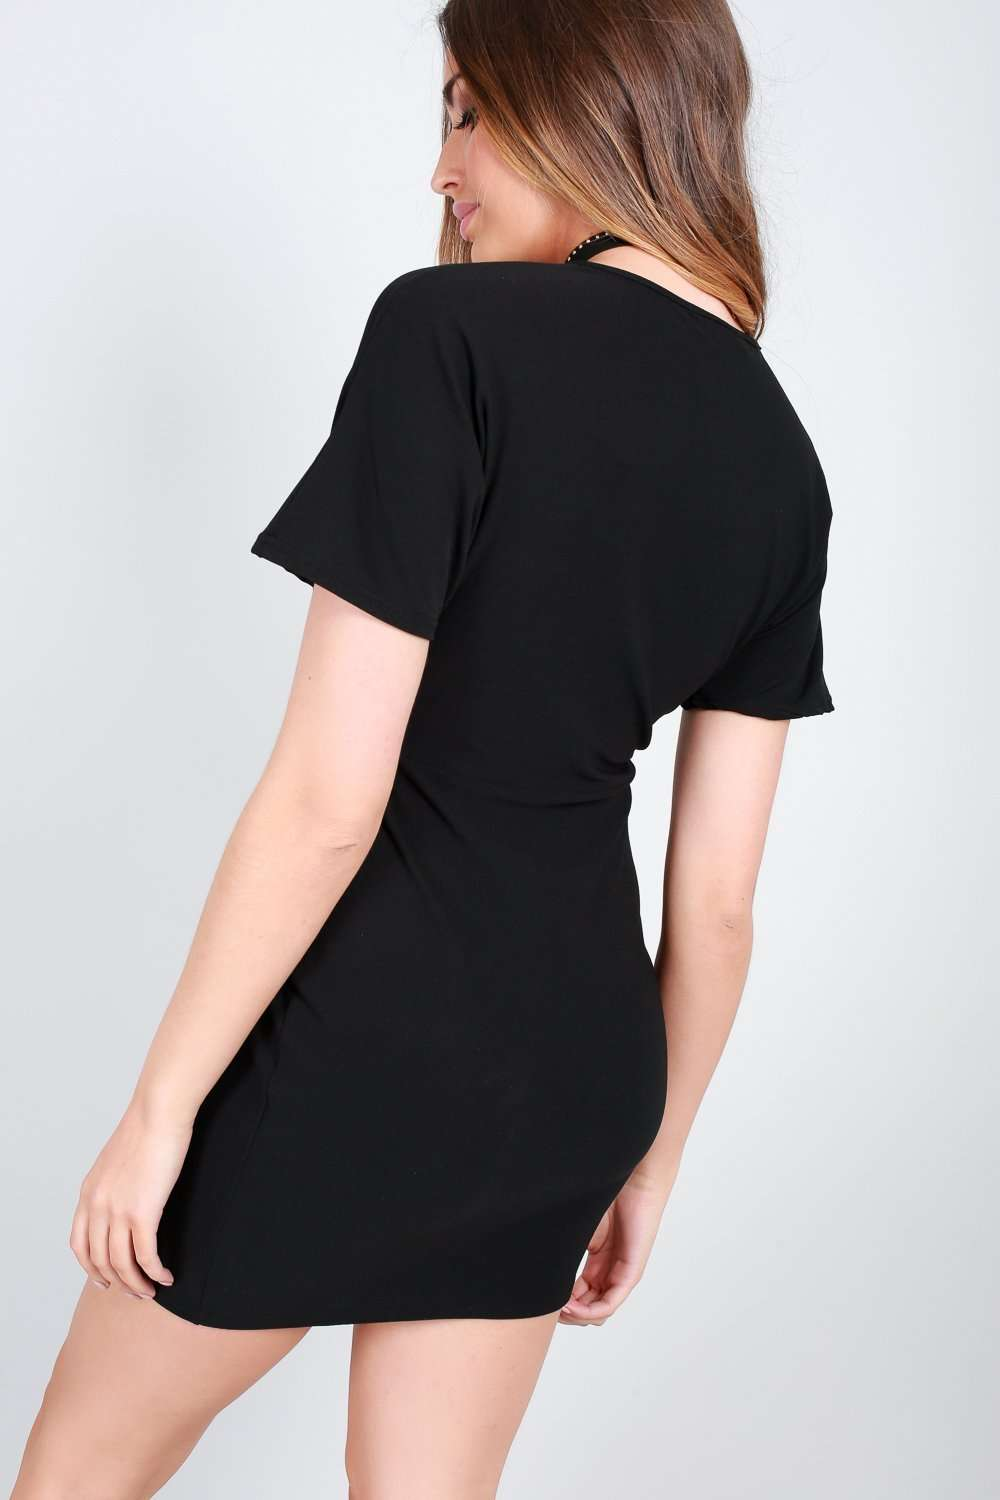 Casie Black Vneck Short Sleeve Mini Dress - bejealous-com